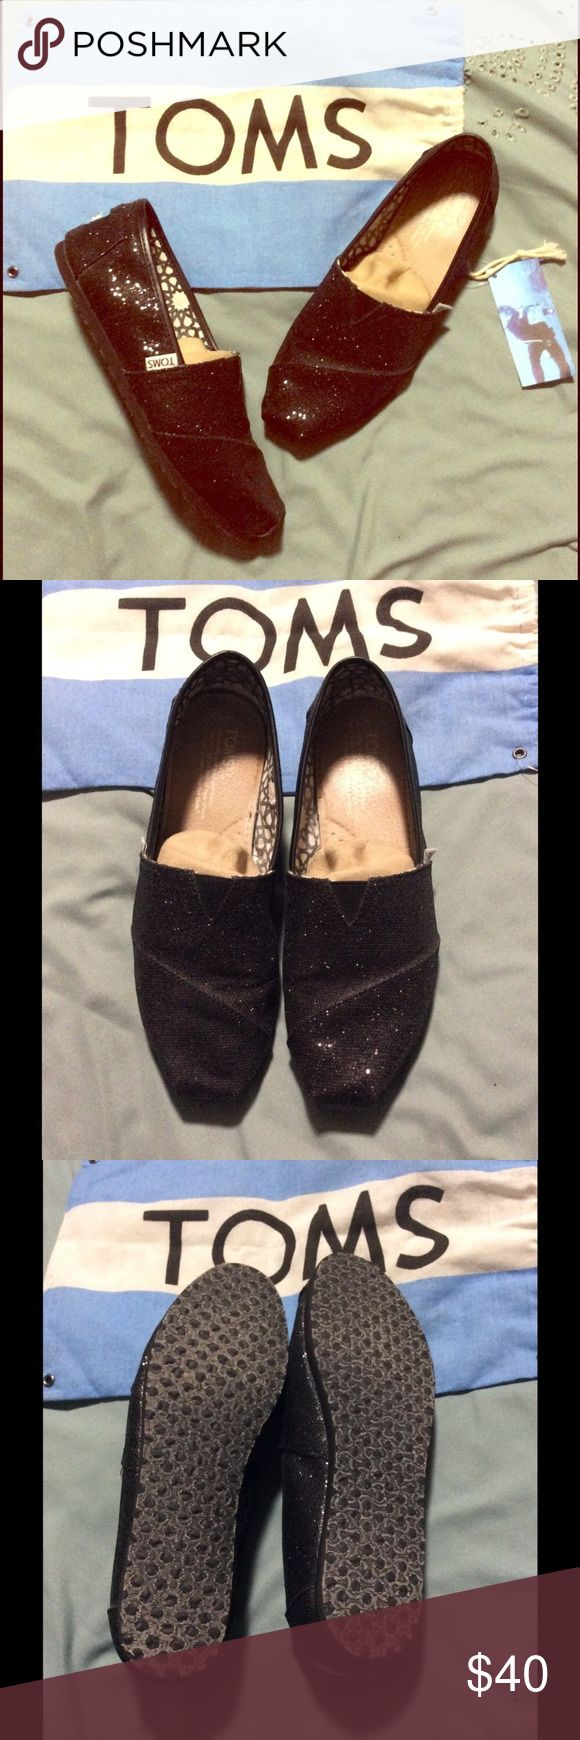 Women's Black Glitter Toms Worn a couple of times, always with powder in the shoe! Toms Shoes Flats & Loafers